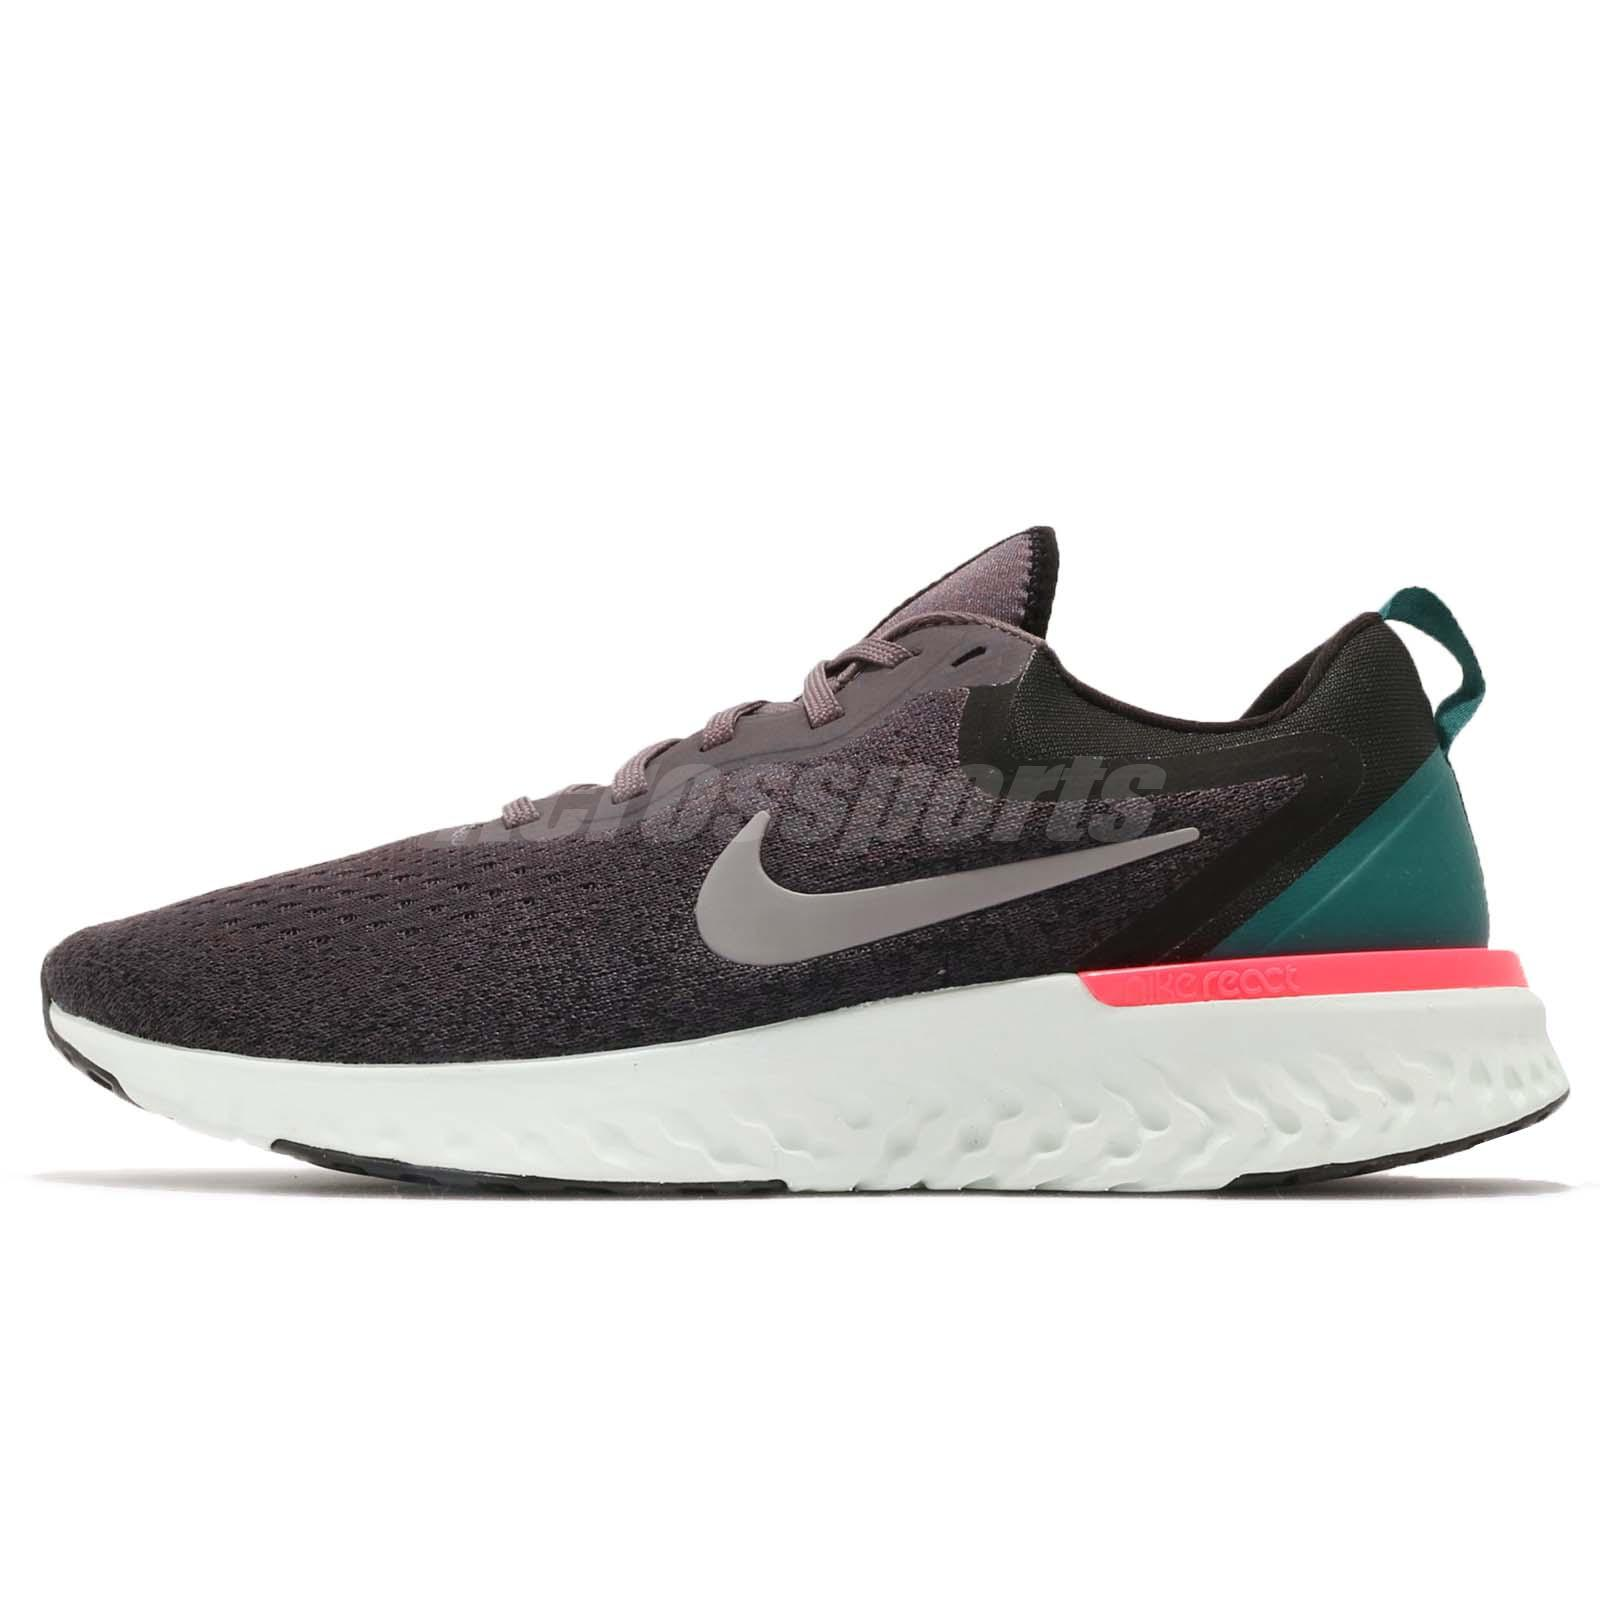 bb3704d3ed00 Nike Odyssey React Thunder Grey Green Pink Men Running Shoes Sneakers  AO9819-007